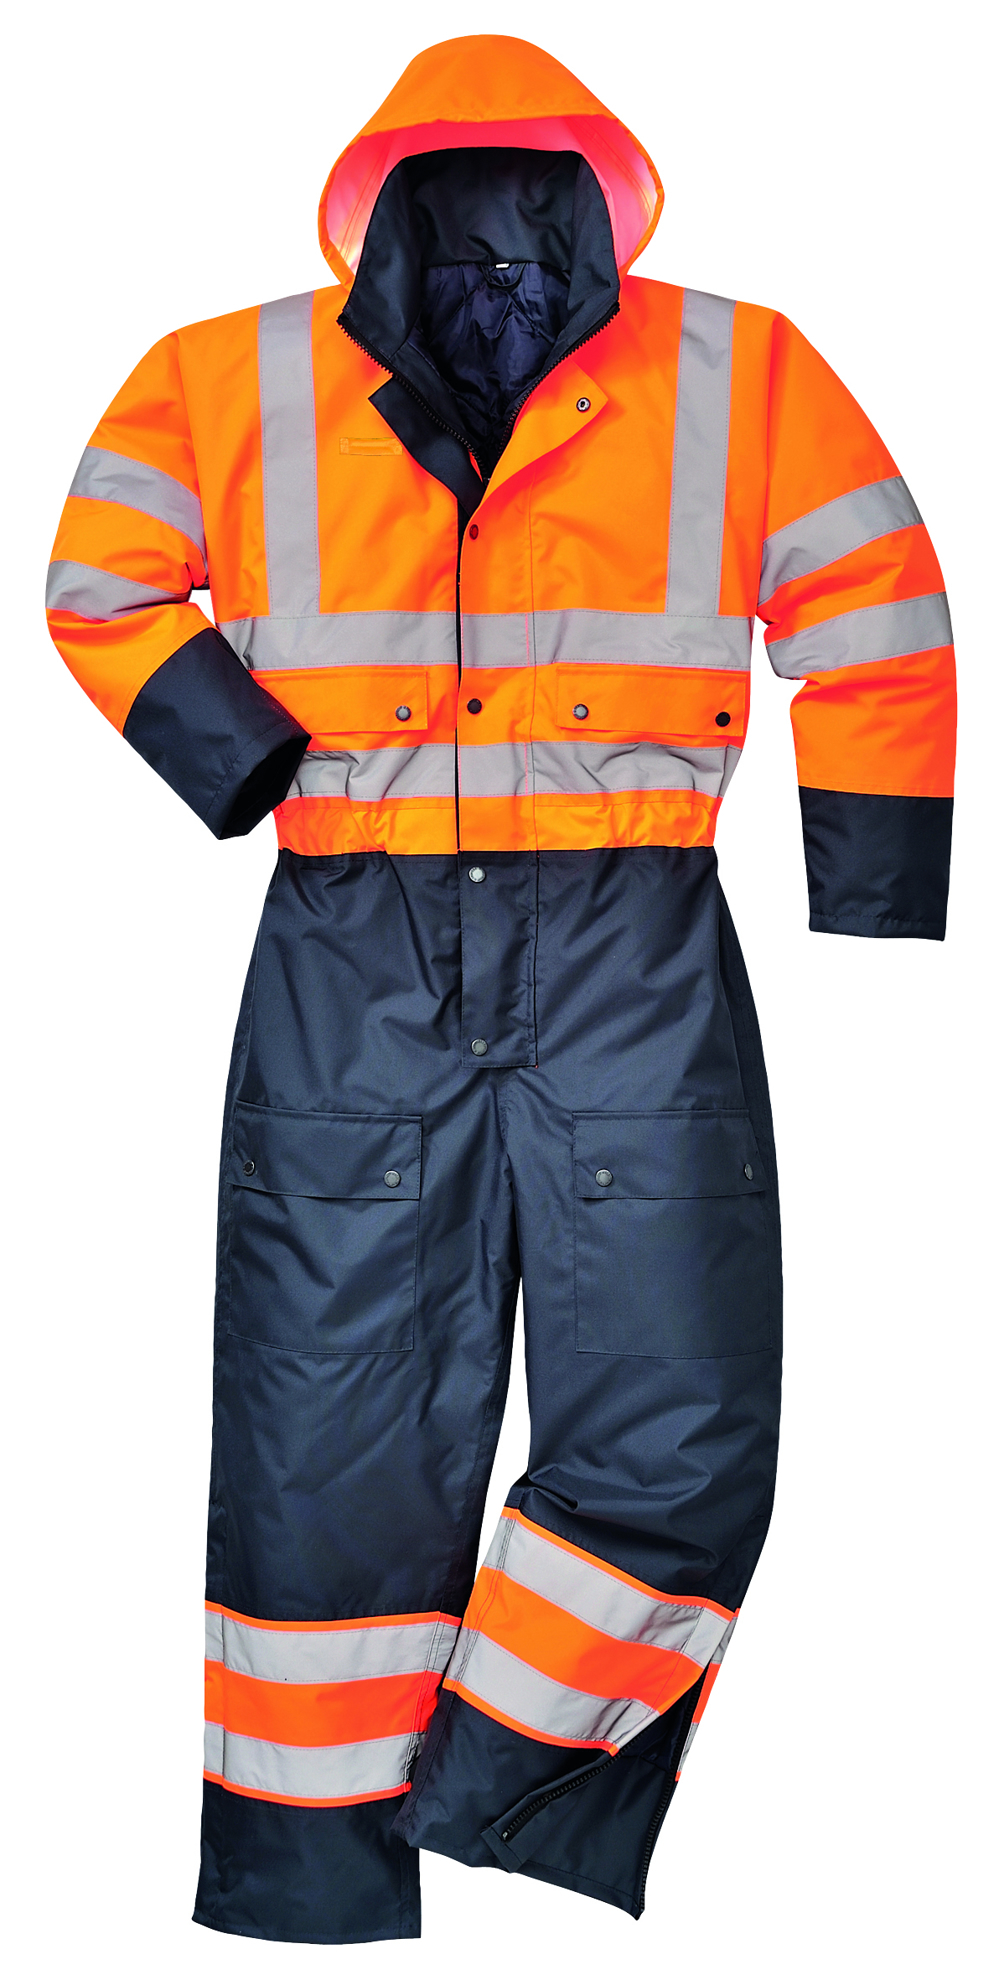 Picture of Portwest Hi Visibility Contrast Coverall Orange/Navy